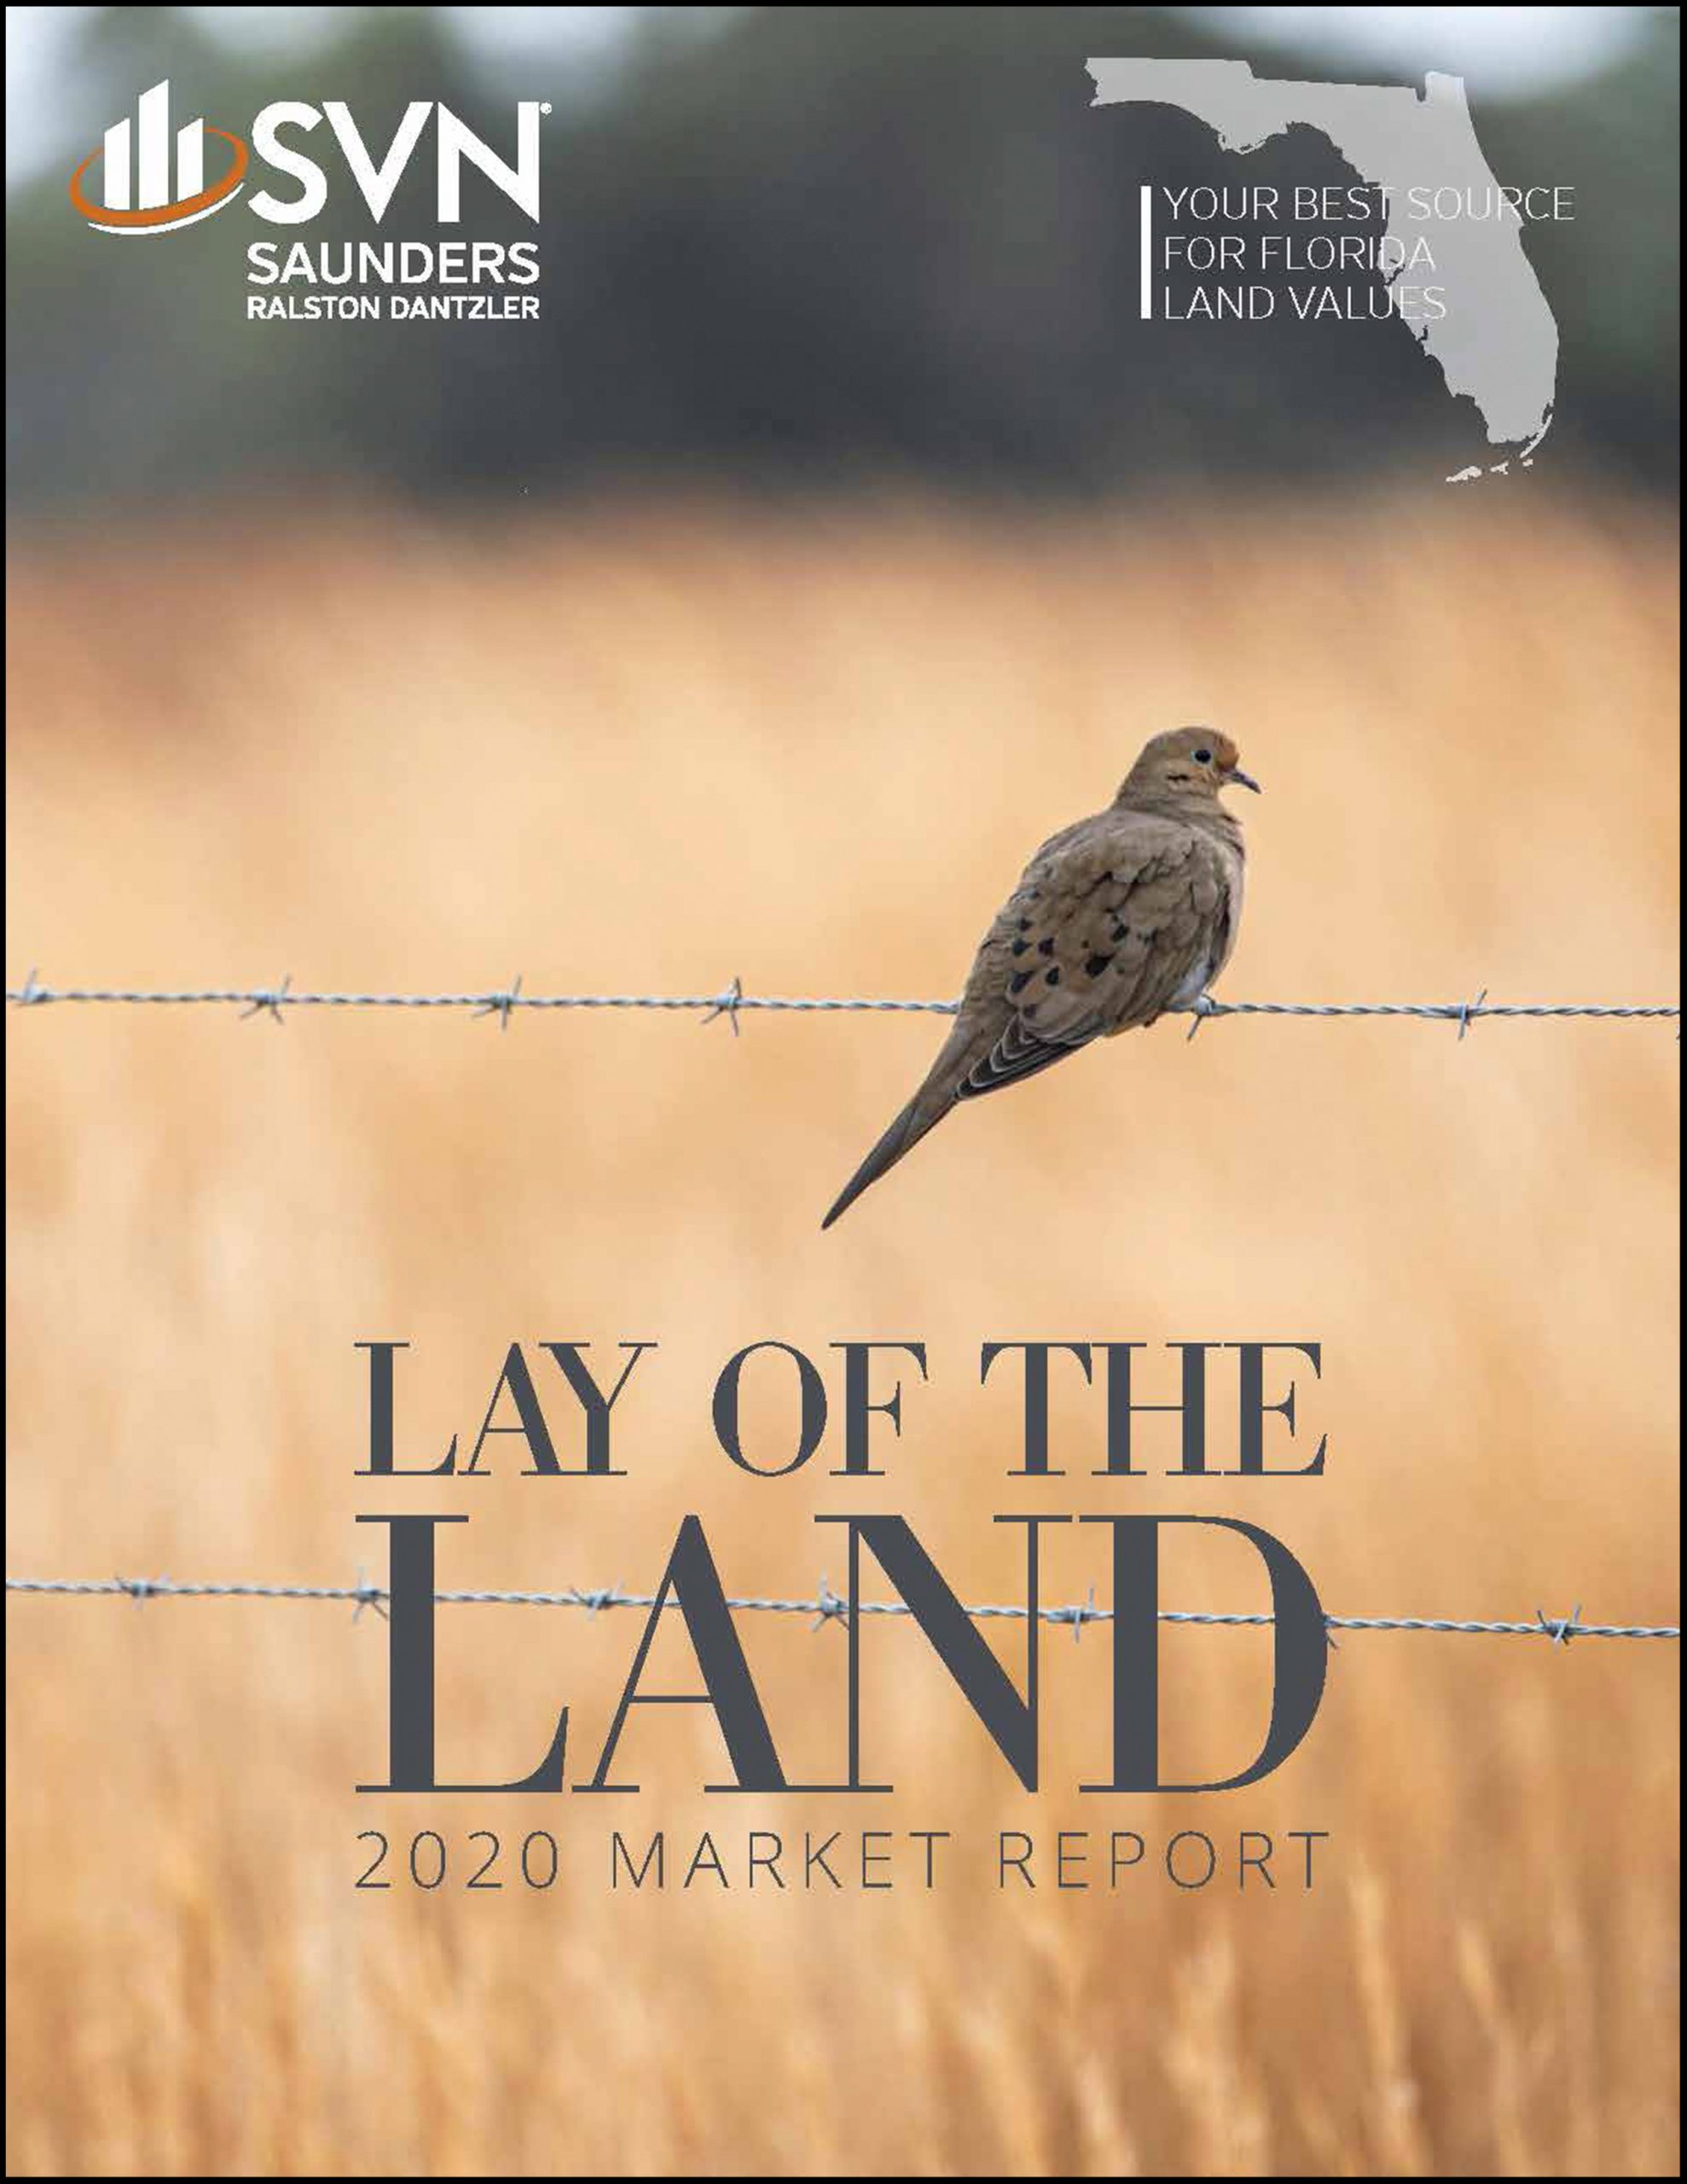 Lay of the Land Market Report 2020